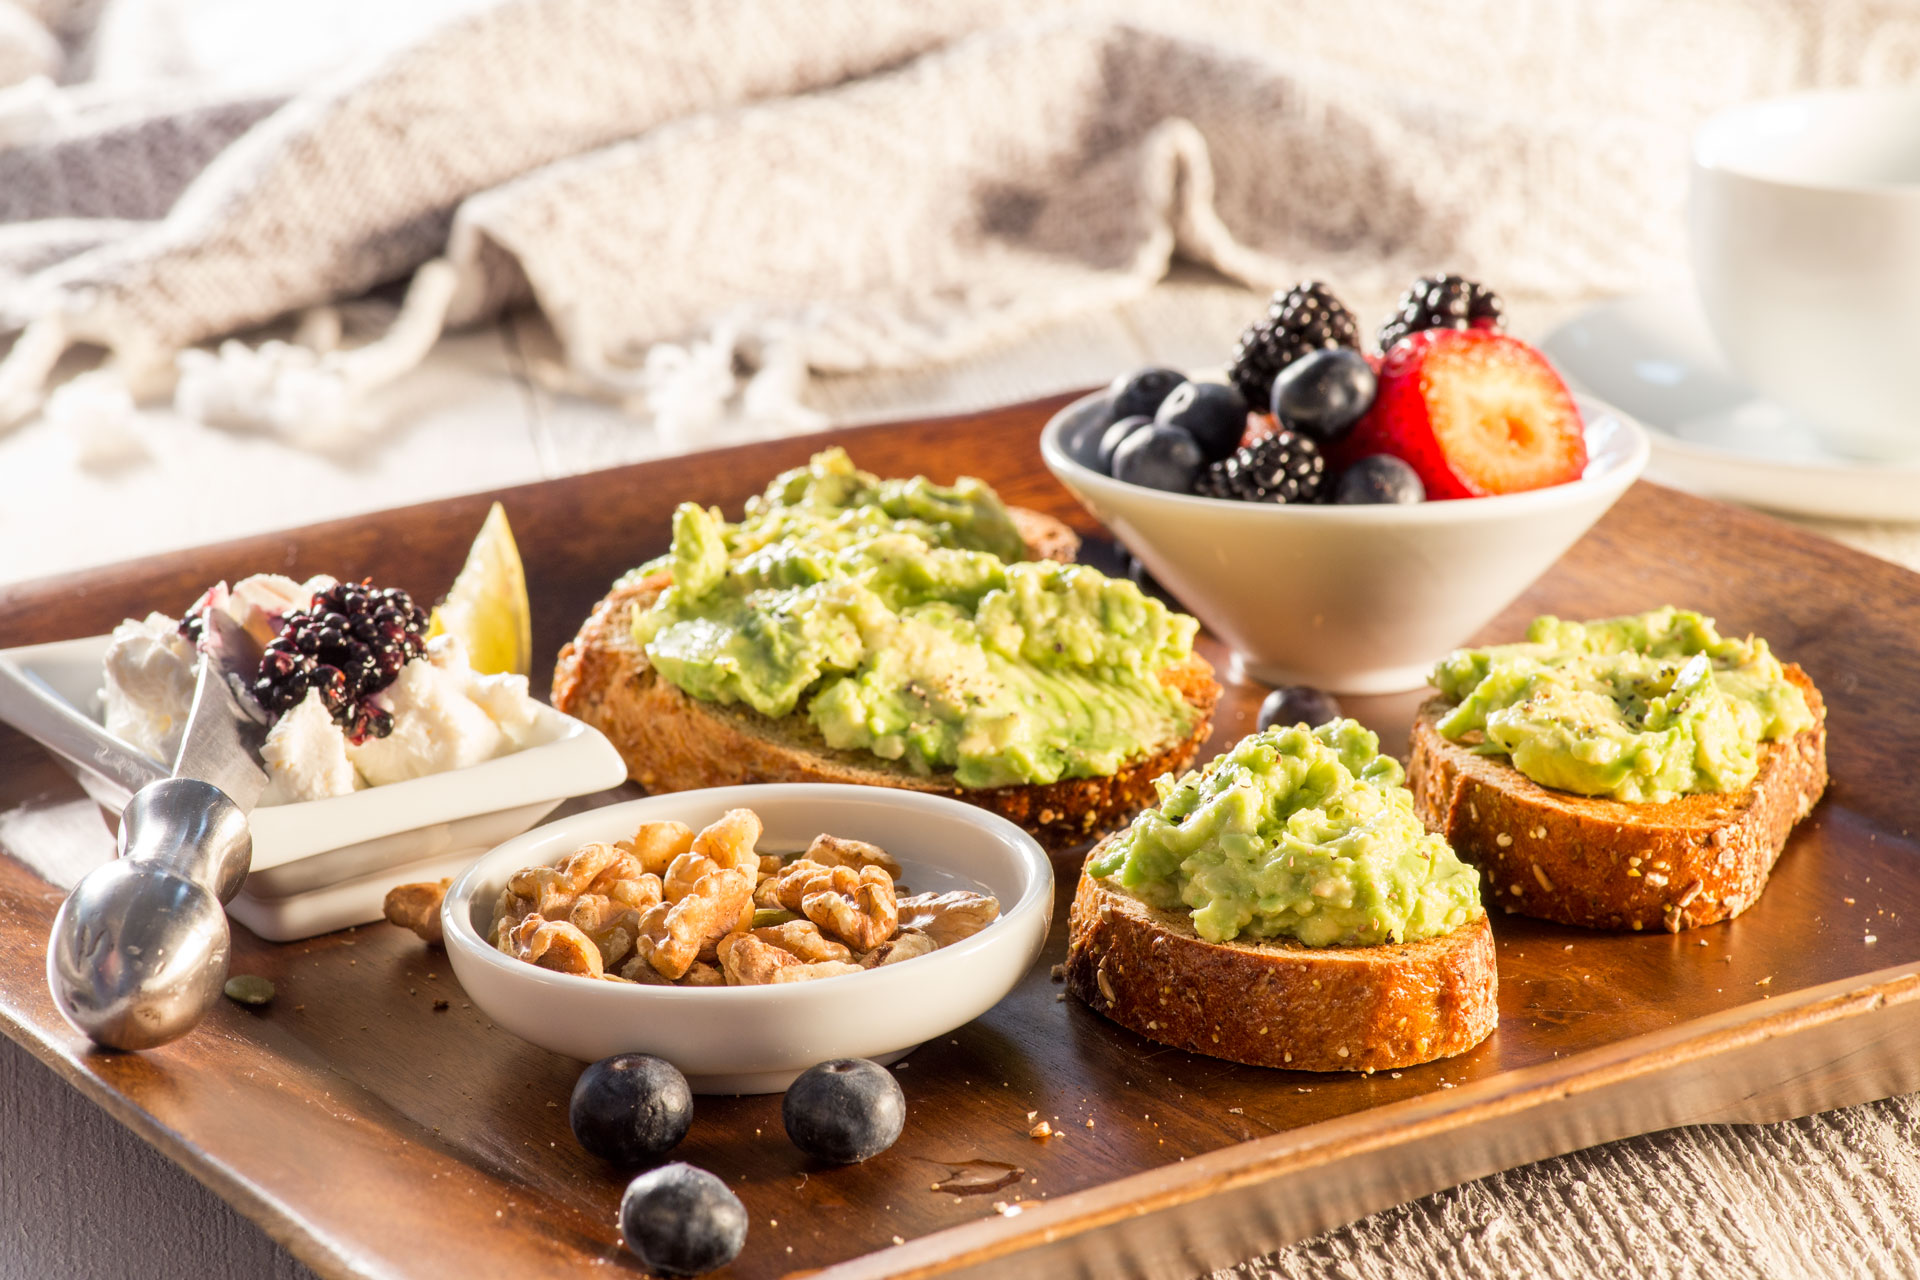 Our non-traditional continental breakfast board includes sprouted whole grain toast with ripe mashed avocado served with an assortment of fresh fruit (the tart tangy flavor of blueberries are particularly delicious paired with avocado), toasted walnuts and cheese.